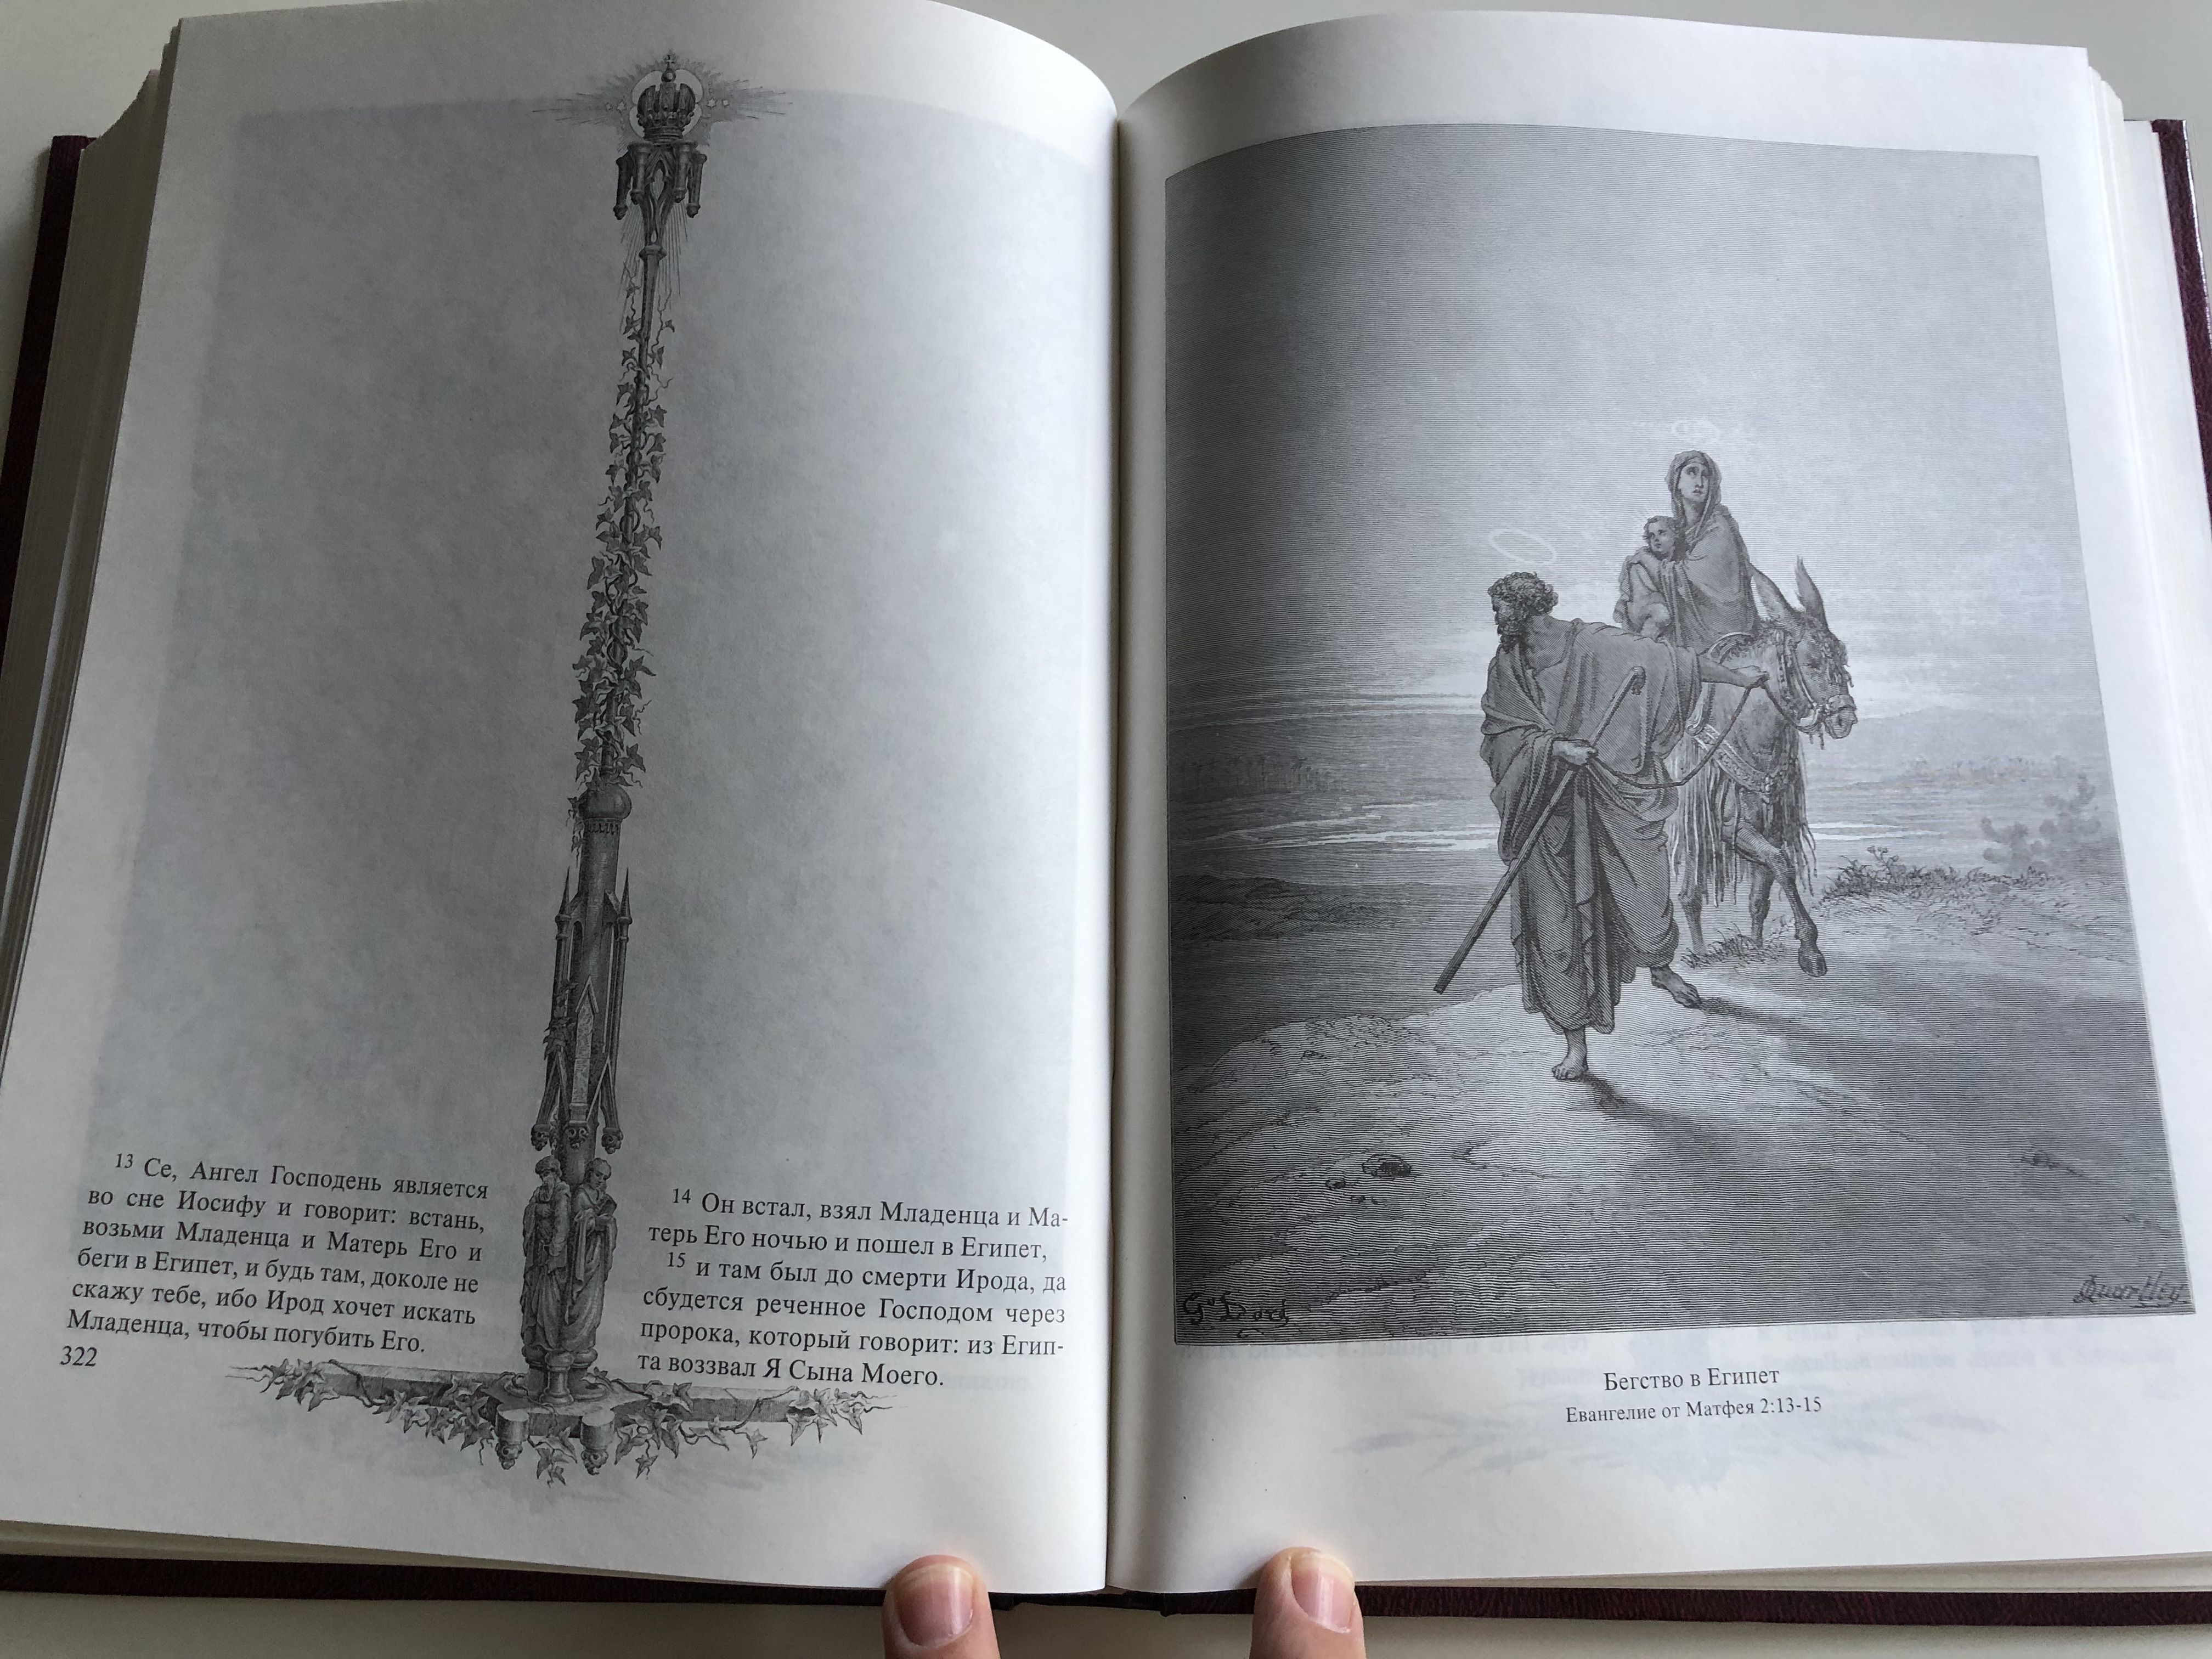 -russian-language-bible-with-gustav-dore-s-illustrations-with-bible-text-from-the-sinodal-translation-hardcover-1995-russian-bible-society-13-.jpg